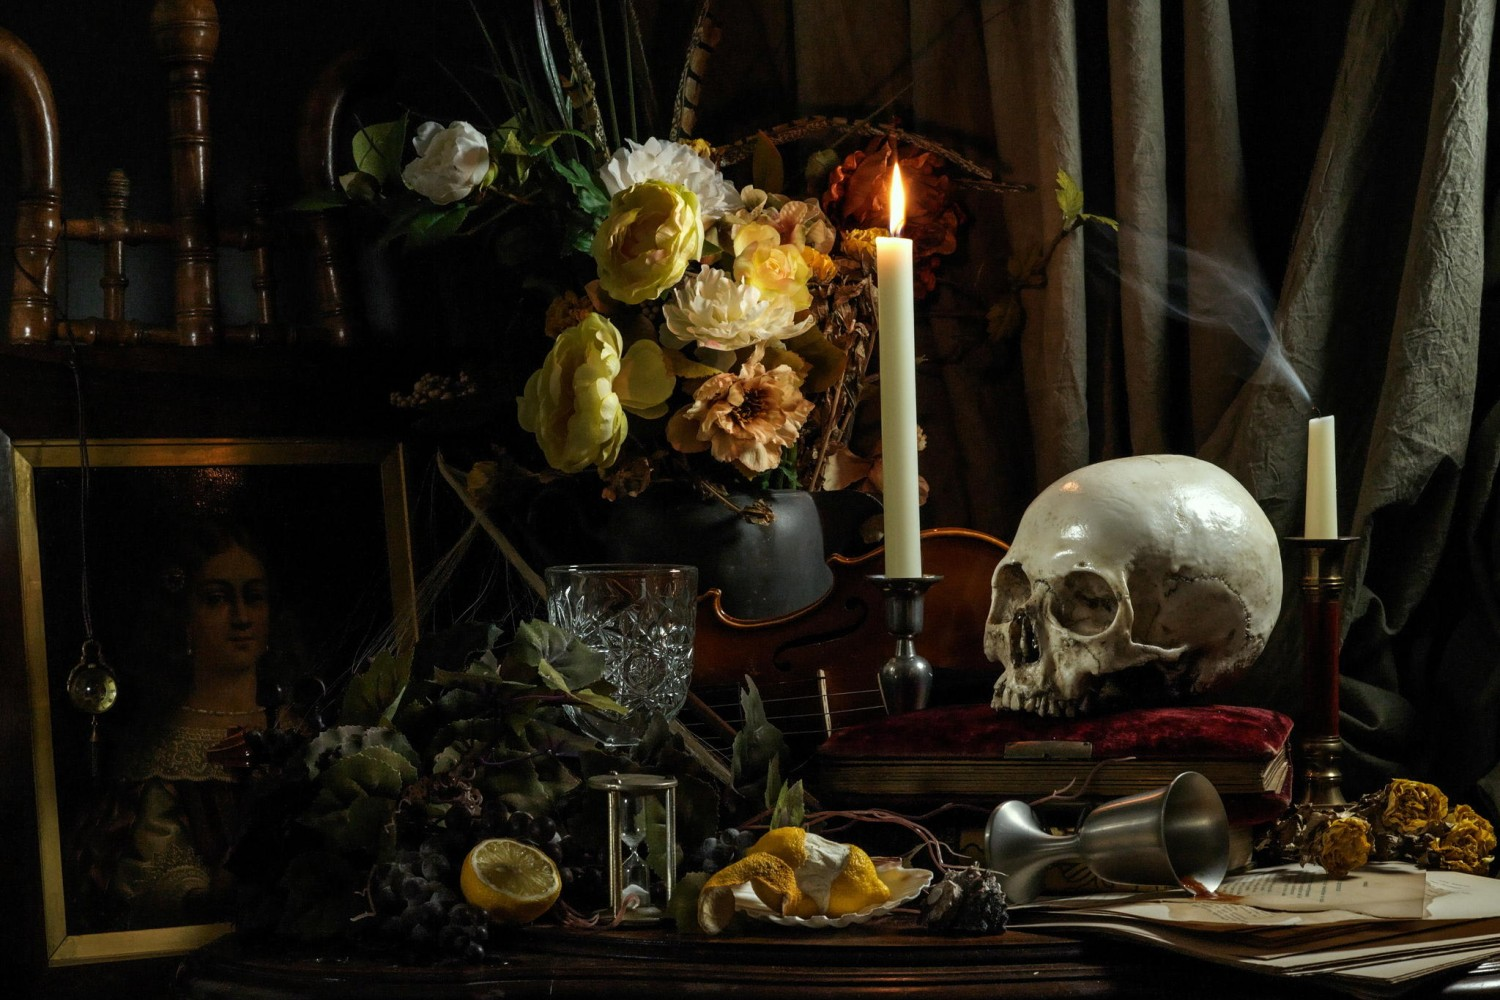 How To Create A 17th Century-Inspired Vanitas Still Life Photo